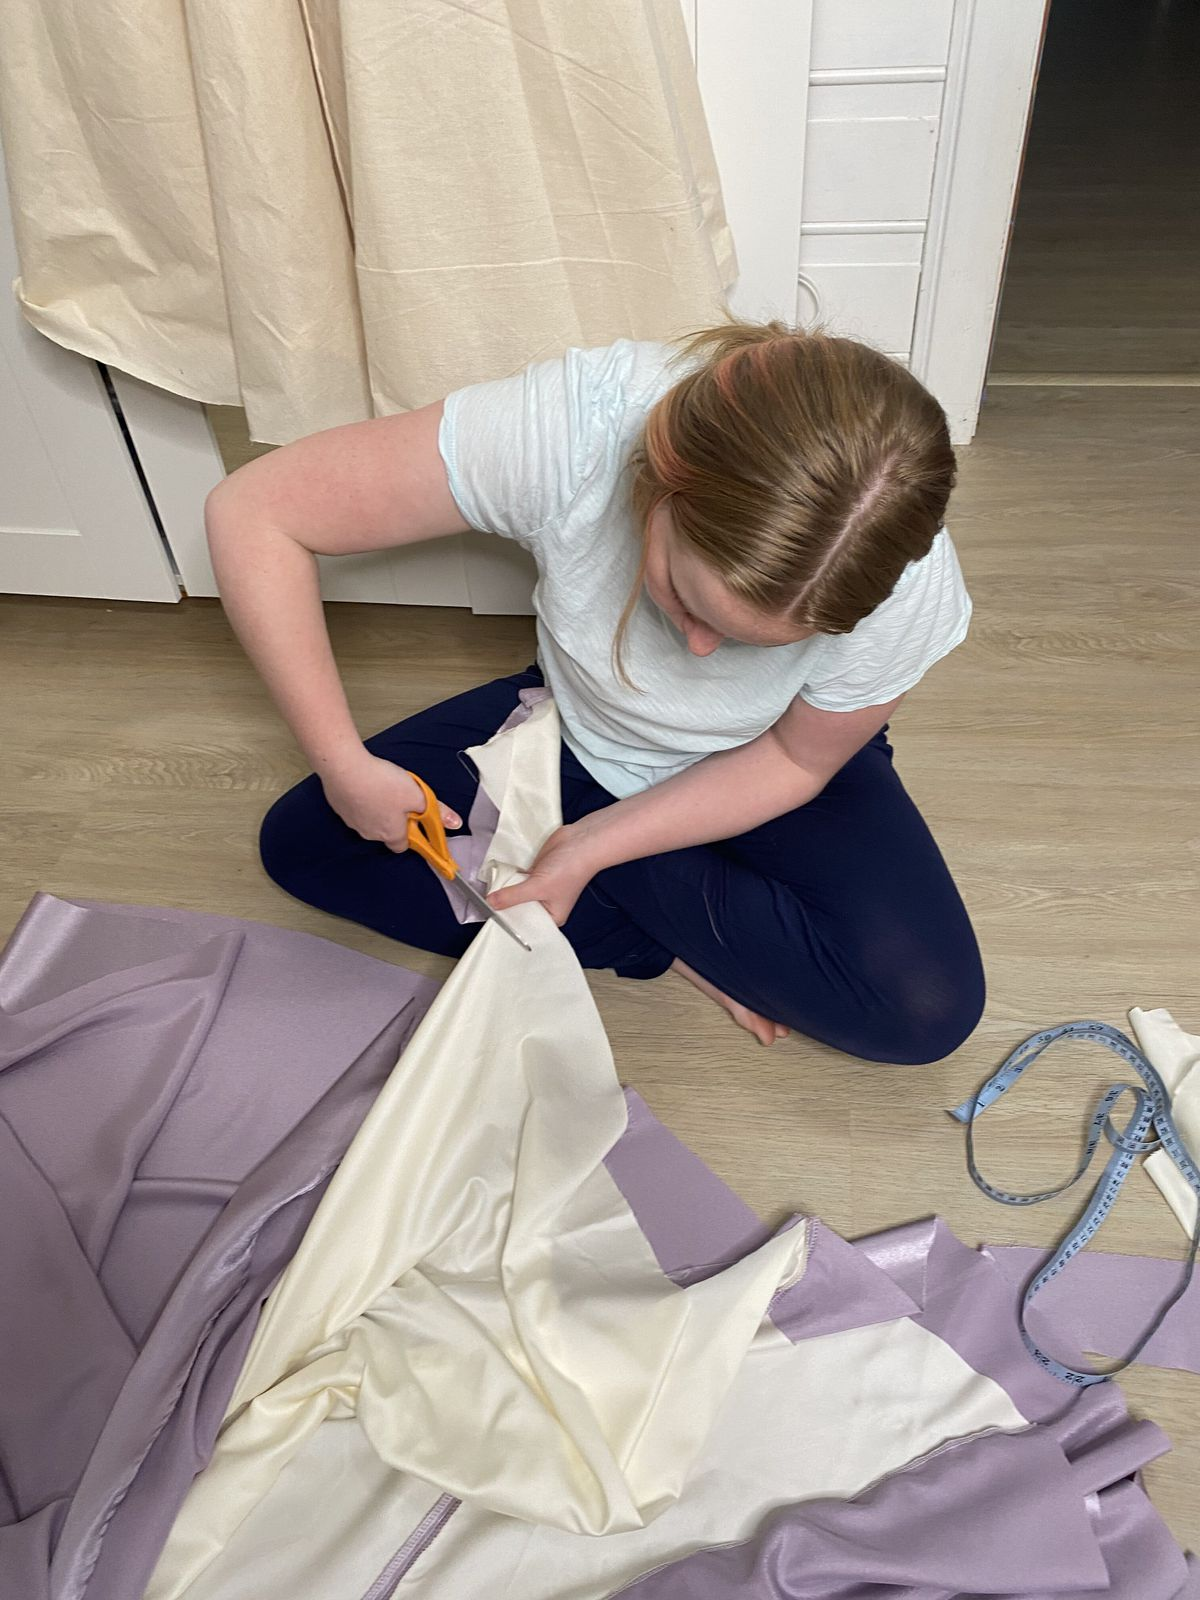 A teenager sits on her floor cutting fabric.